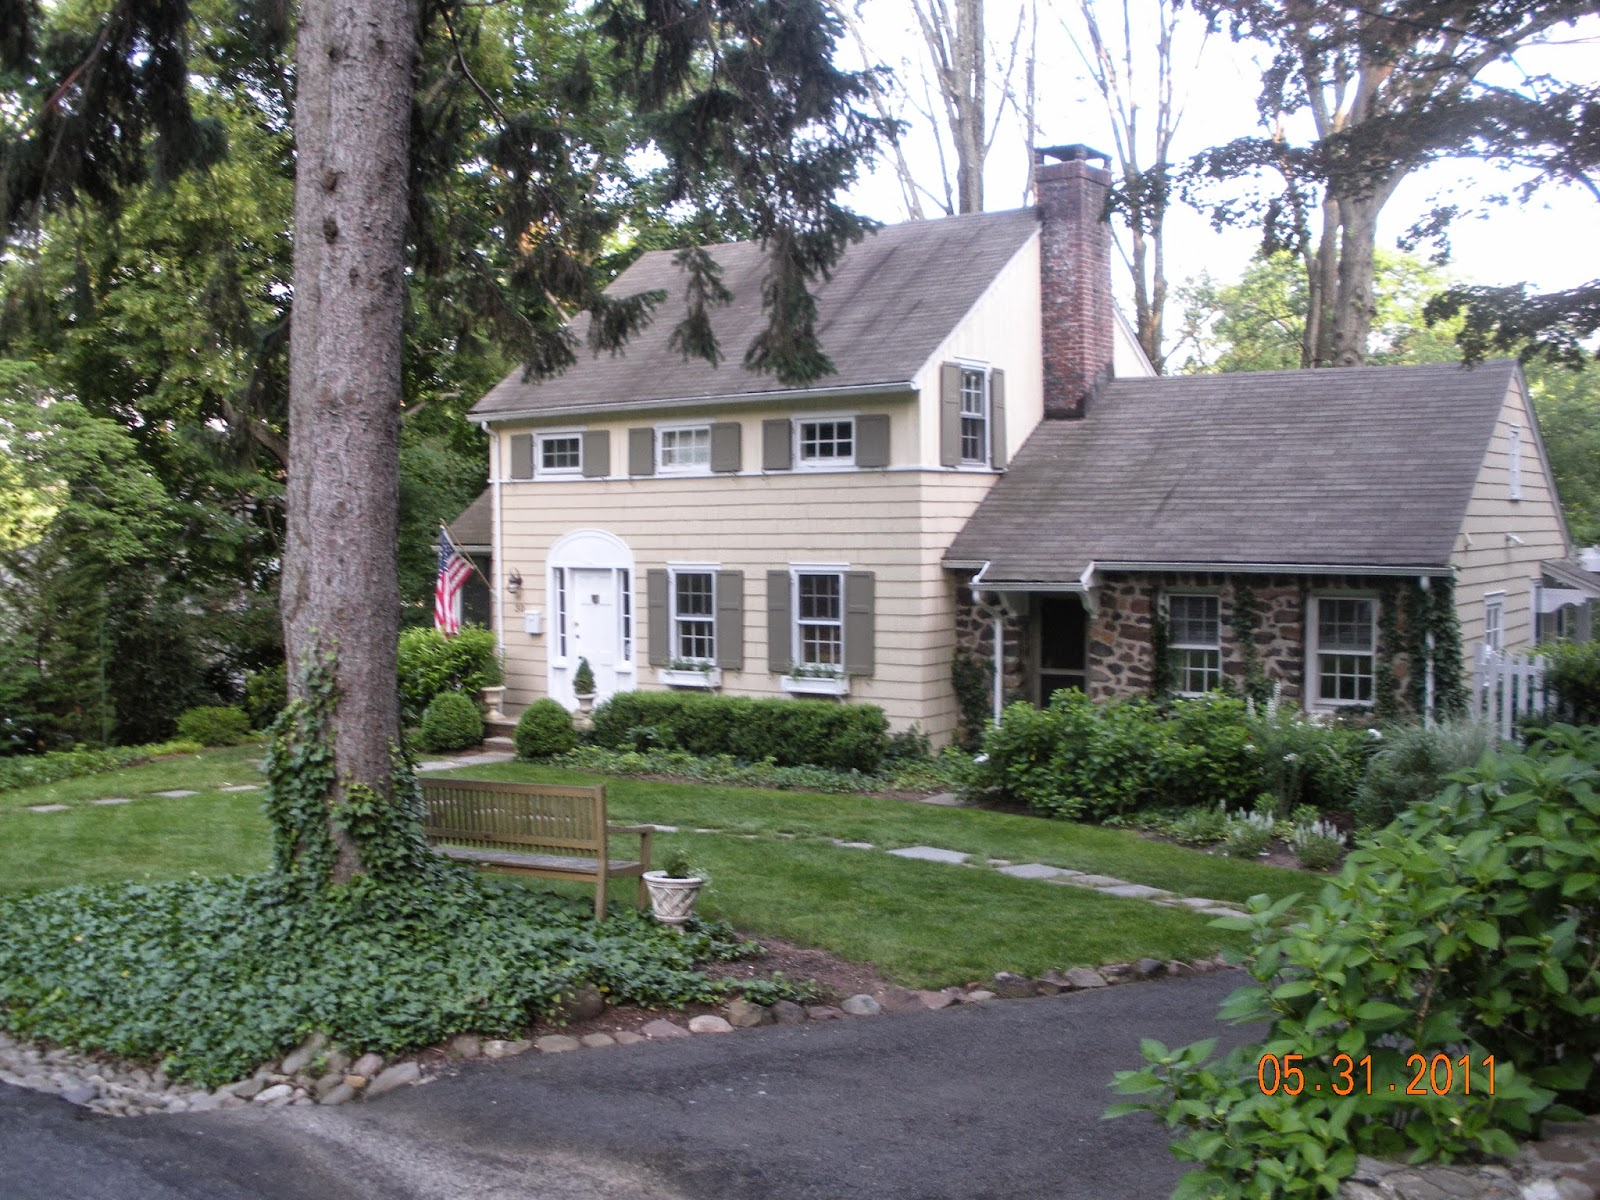 finding a home in new jersey home search in maplewood south orange rh njexpatguru blogspot com maplewood nj homes for sale by owner